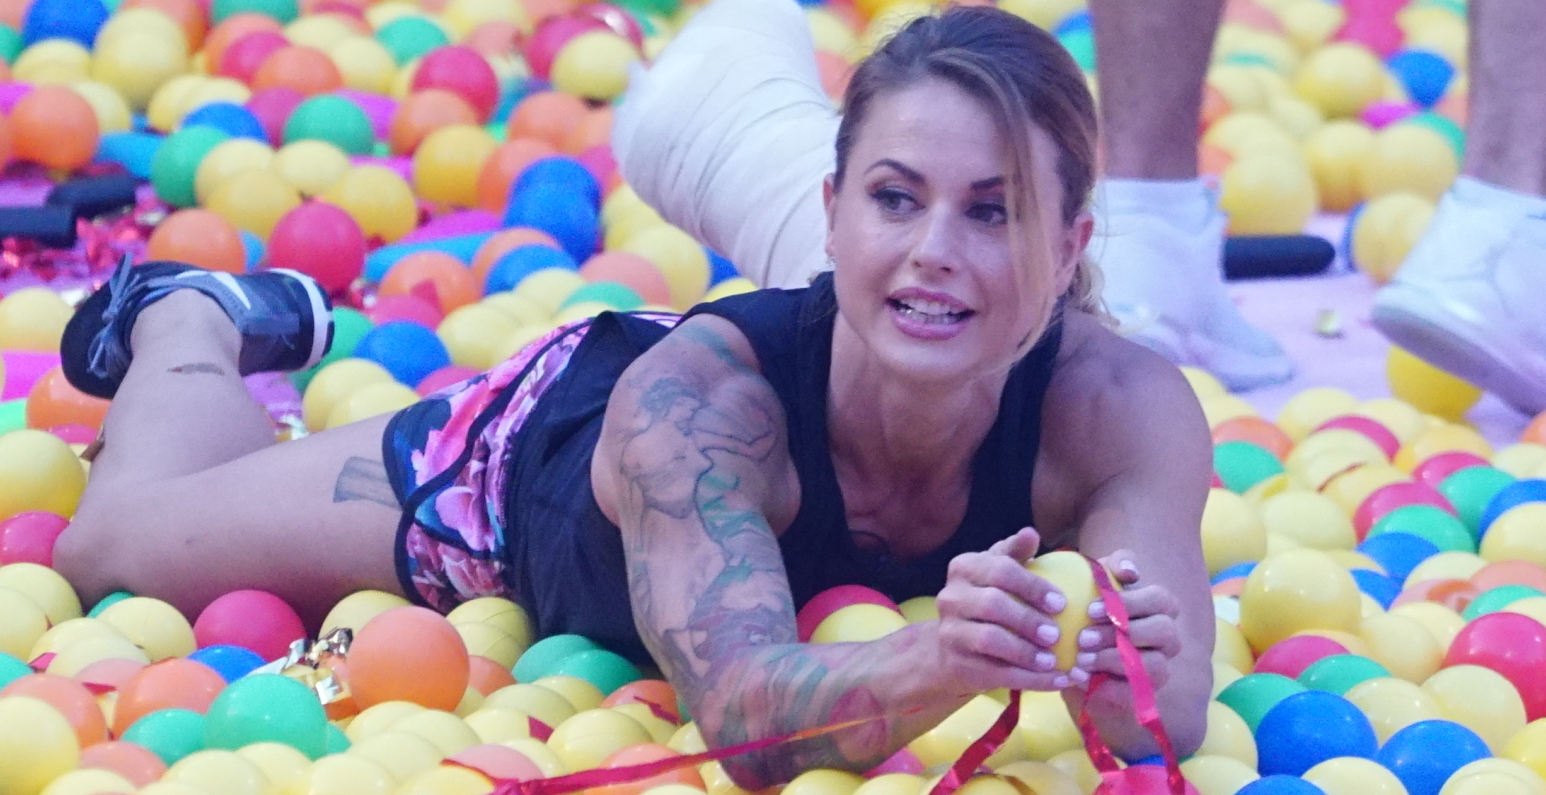 Big Brother Christmas.Big Brother Star Christmas Abbott Is Pregnant With Baby No 1